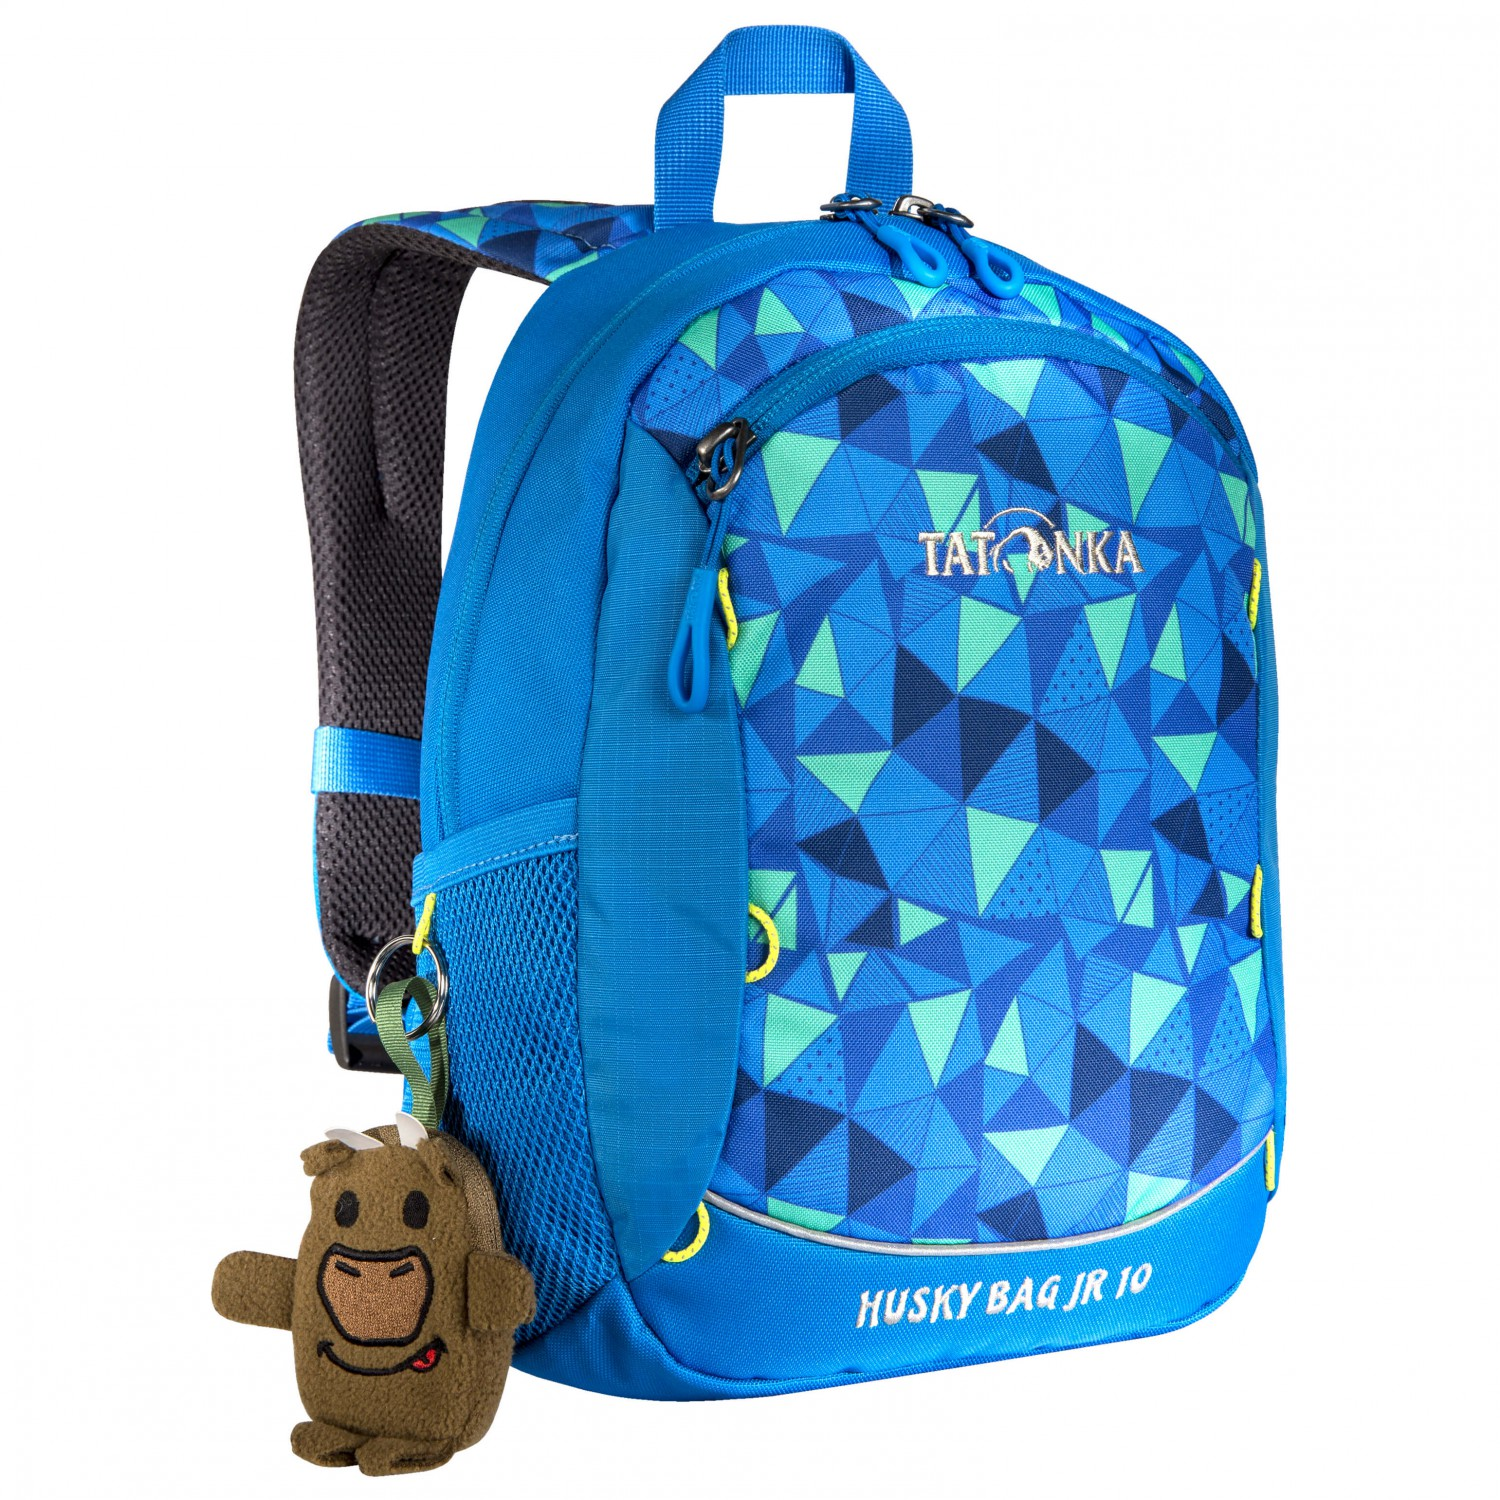 Tatonka Husky Bag 10 - Backpack Kids  b7e87ab9fdfee